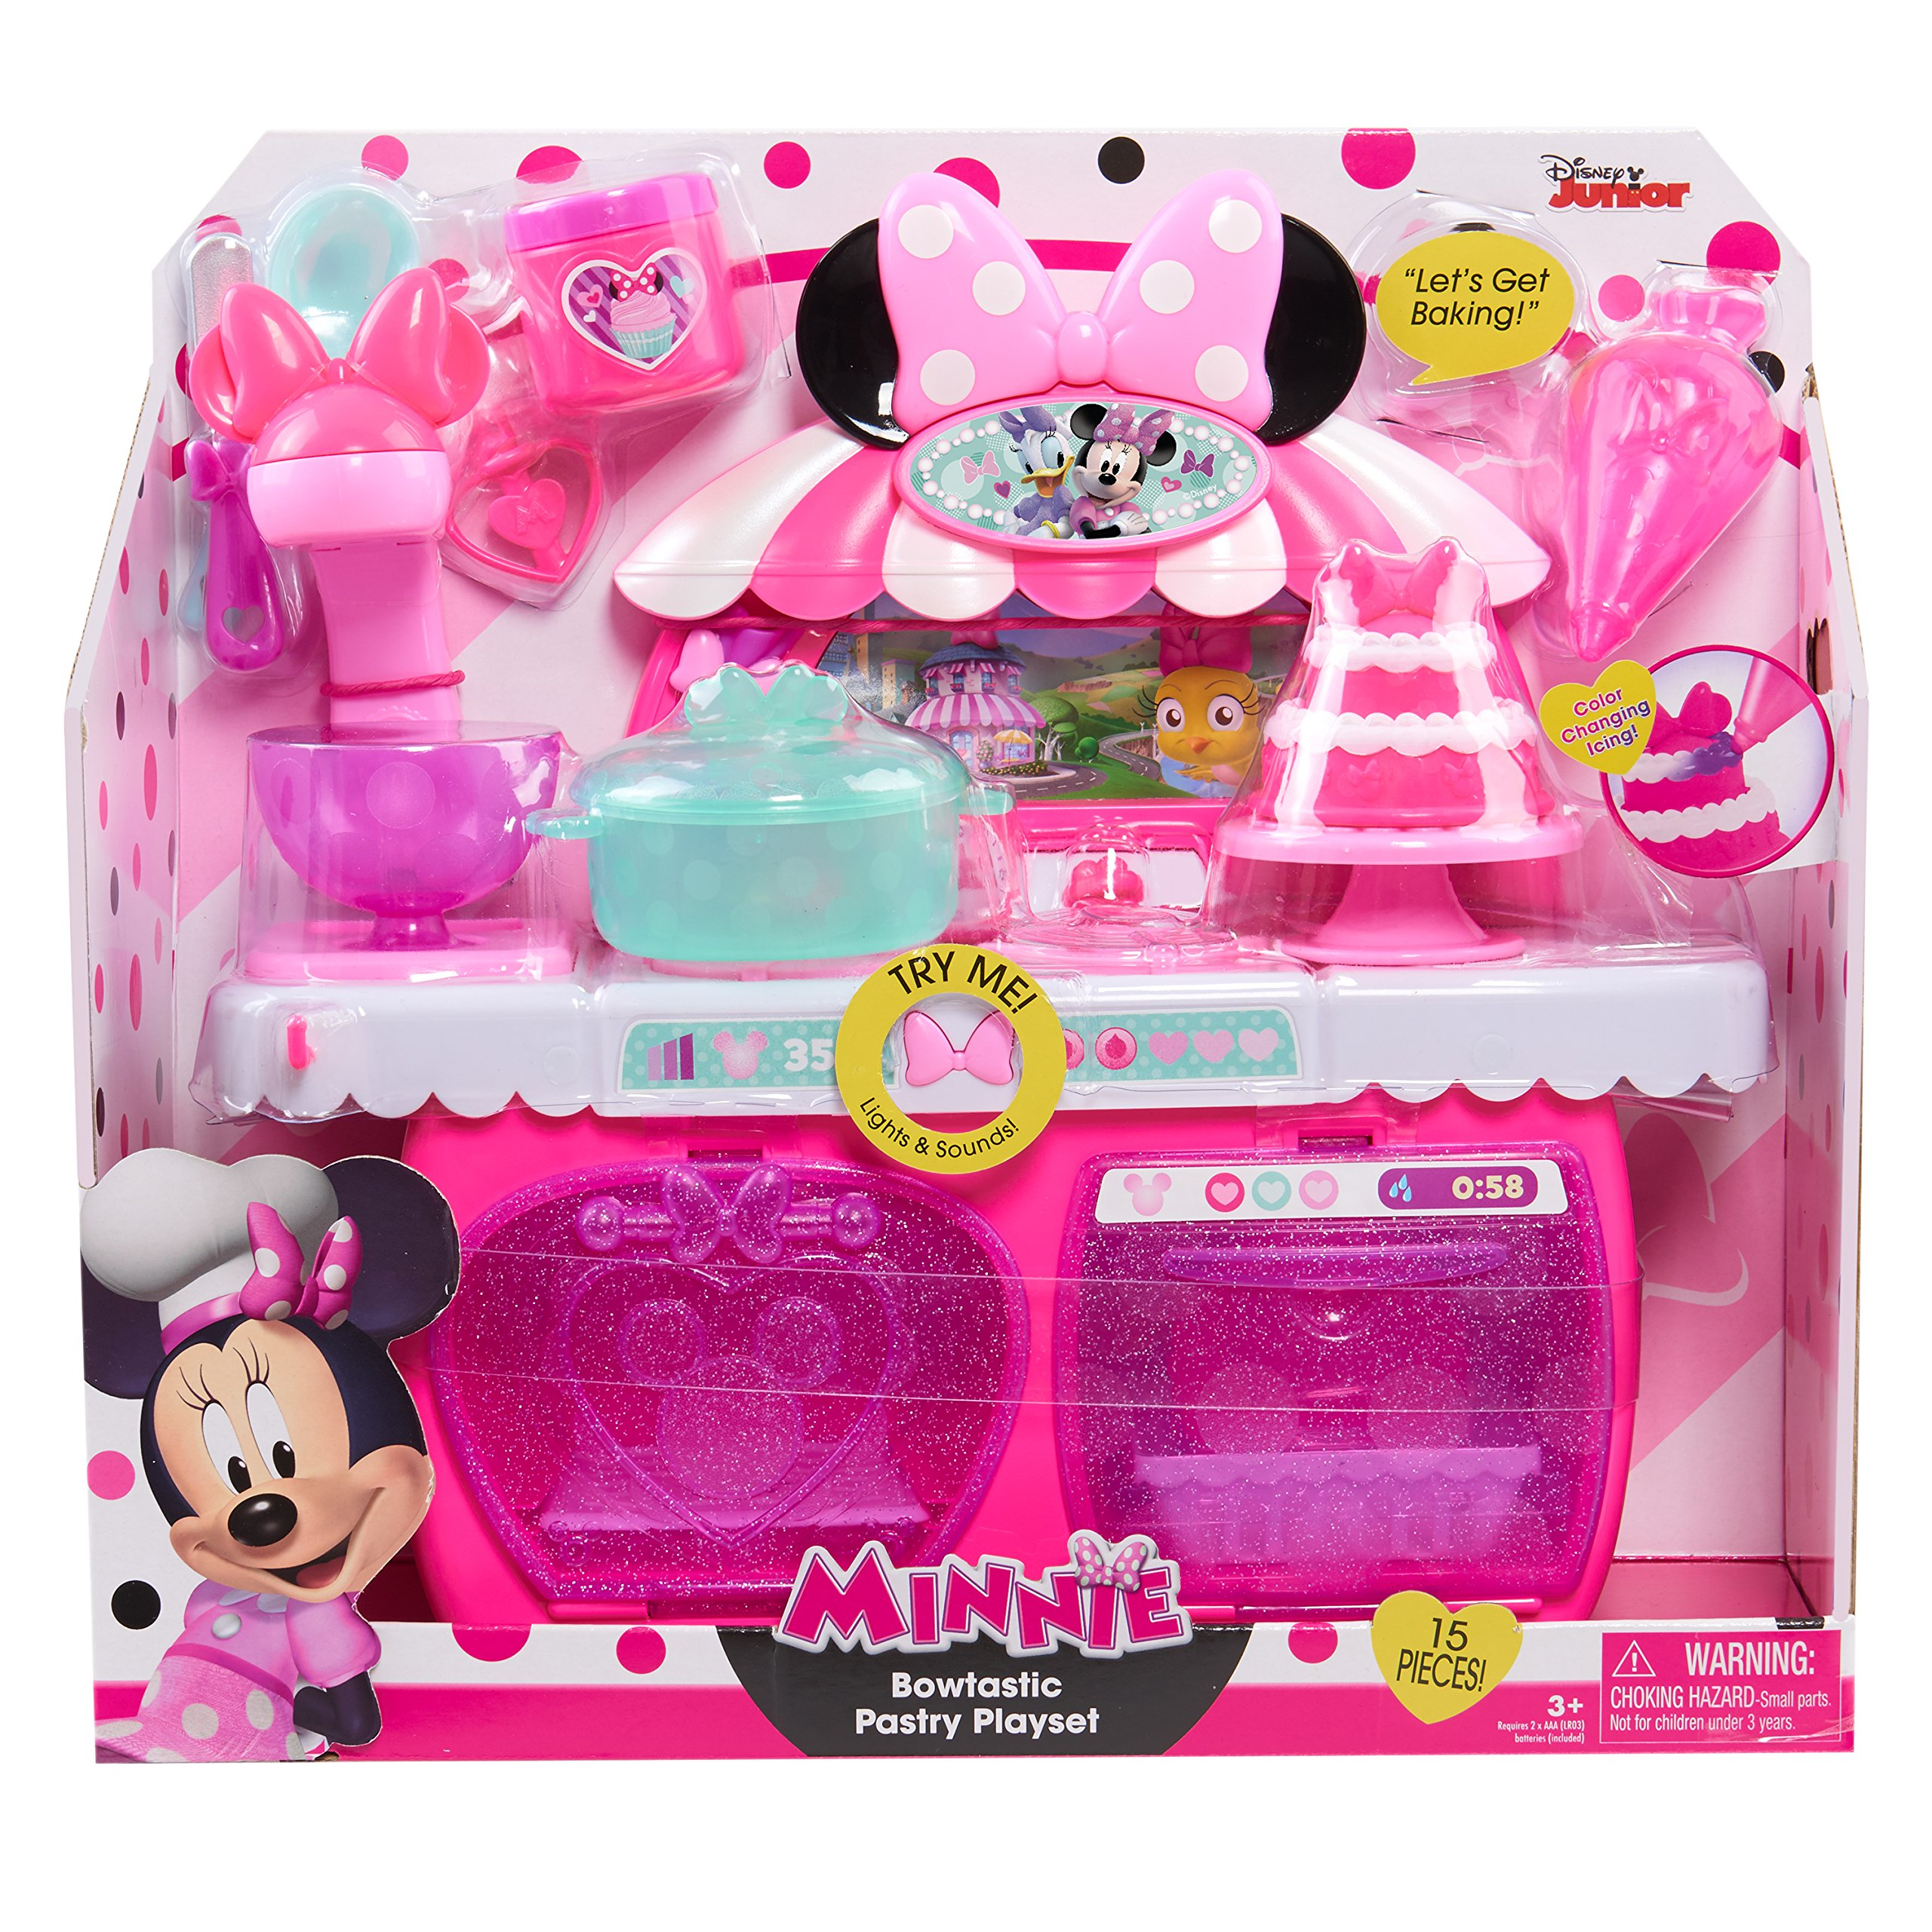 Minnie's Happy Helpers Bowtastic Pastry Playset, Pink